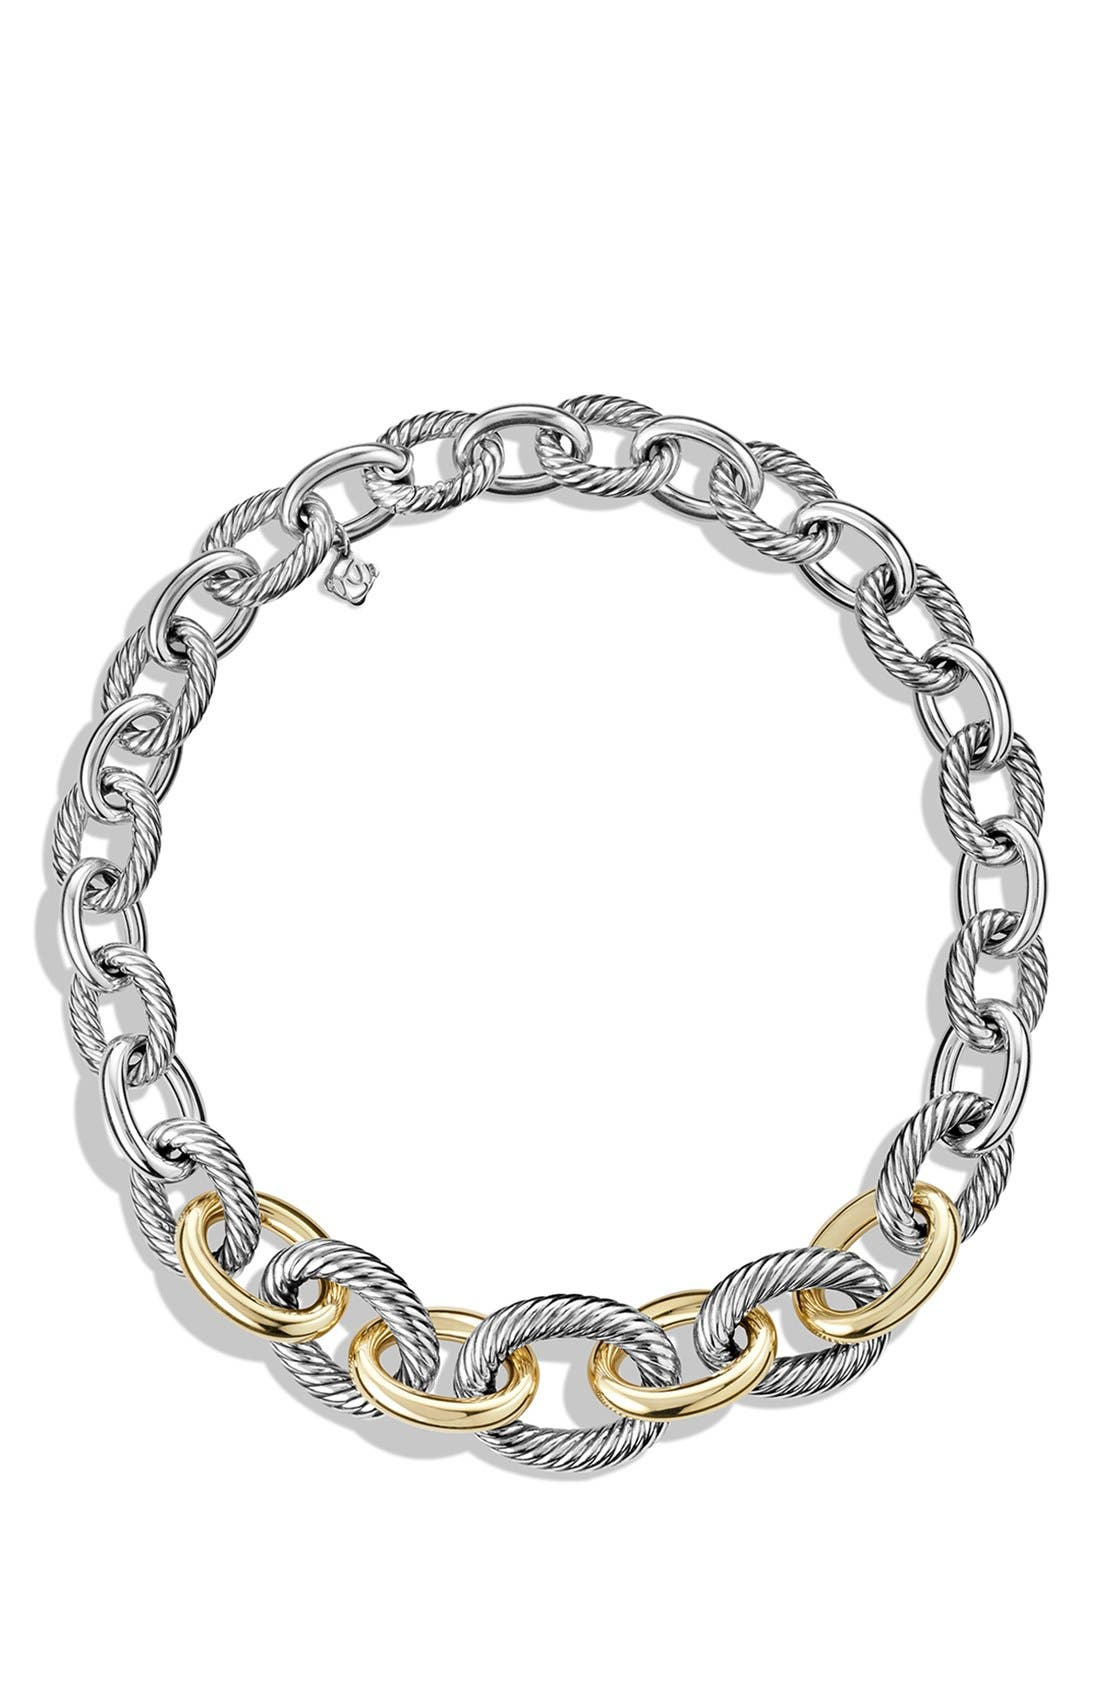 DAVID YURMAN Chain Medium Oval Necklace with 14K Gold